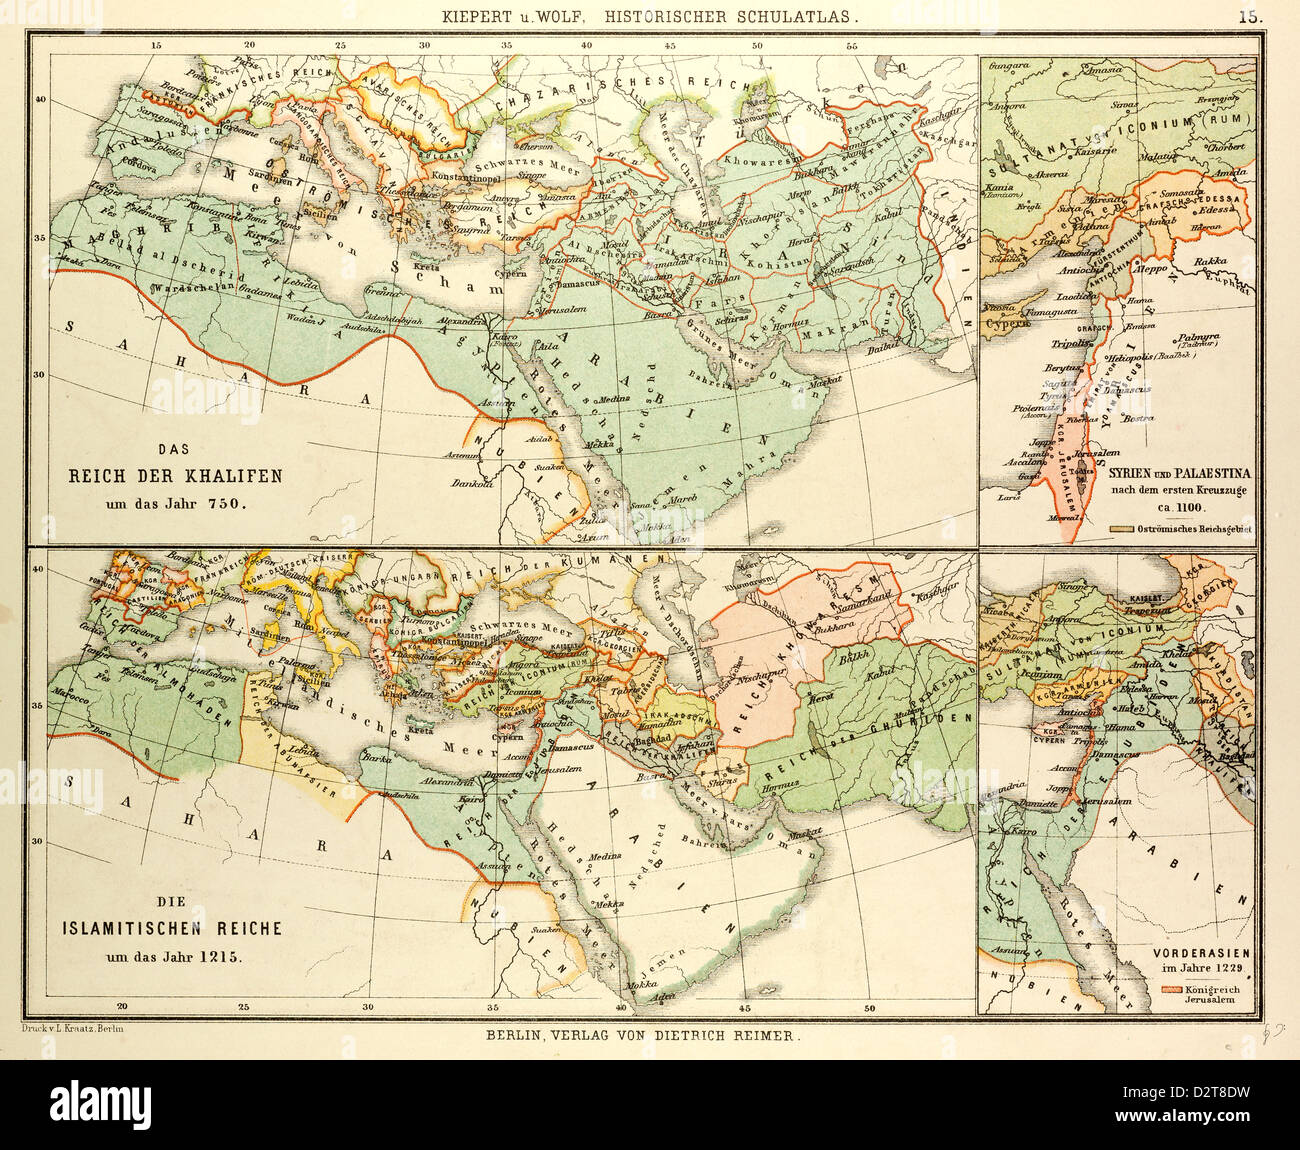 MAP OF THE UMAYYAD CALIPHATE EMPIRE IN 750 AND THE ISLAMIC EMPIRE IN 1215 Stock Photo